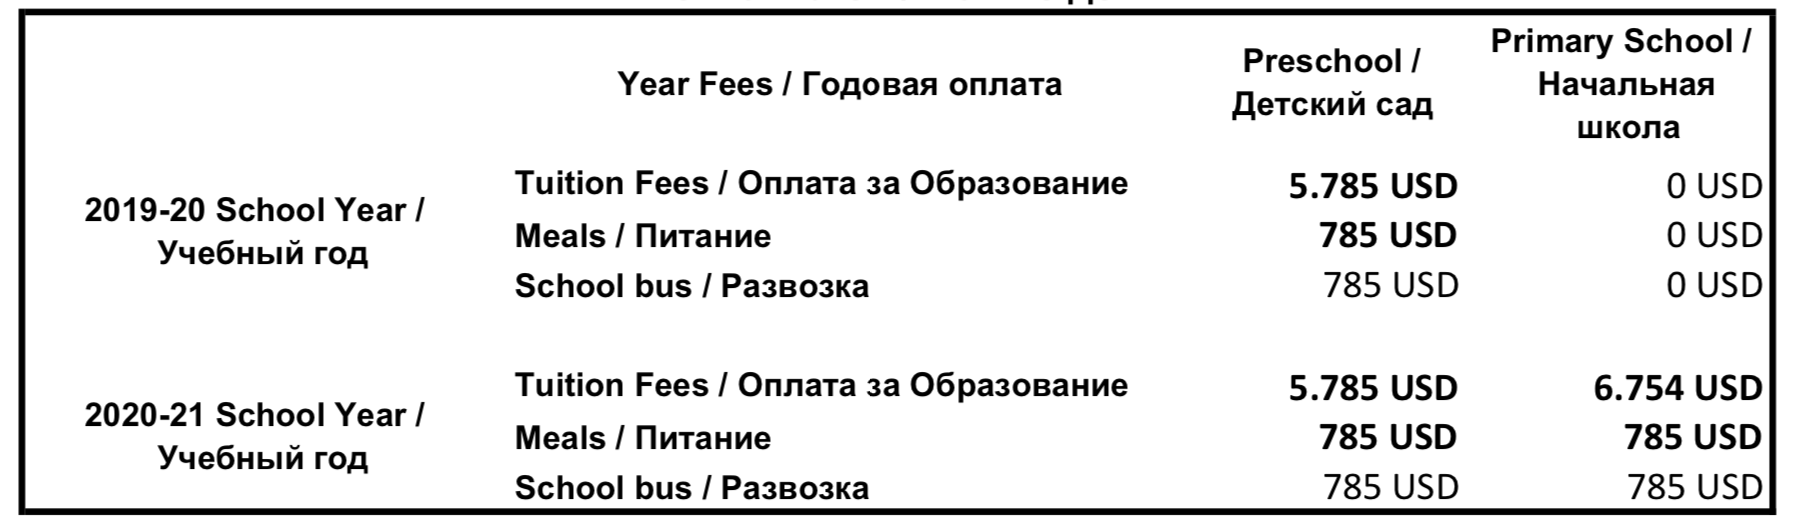 Preschool fees.png